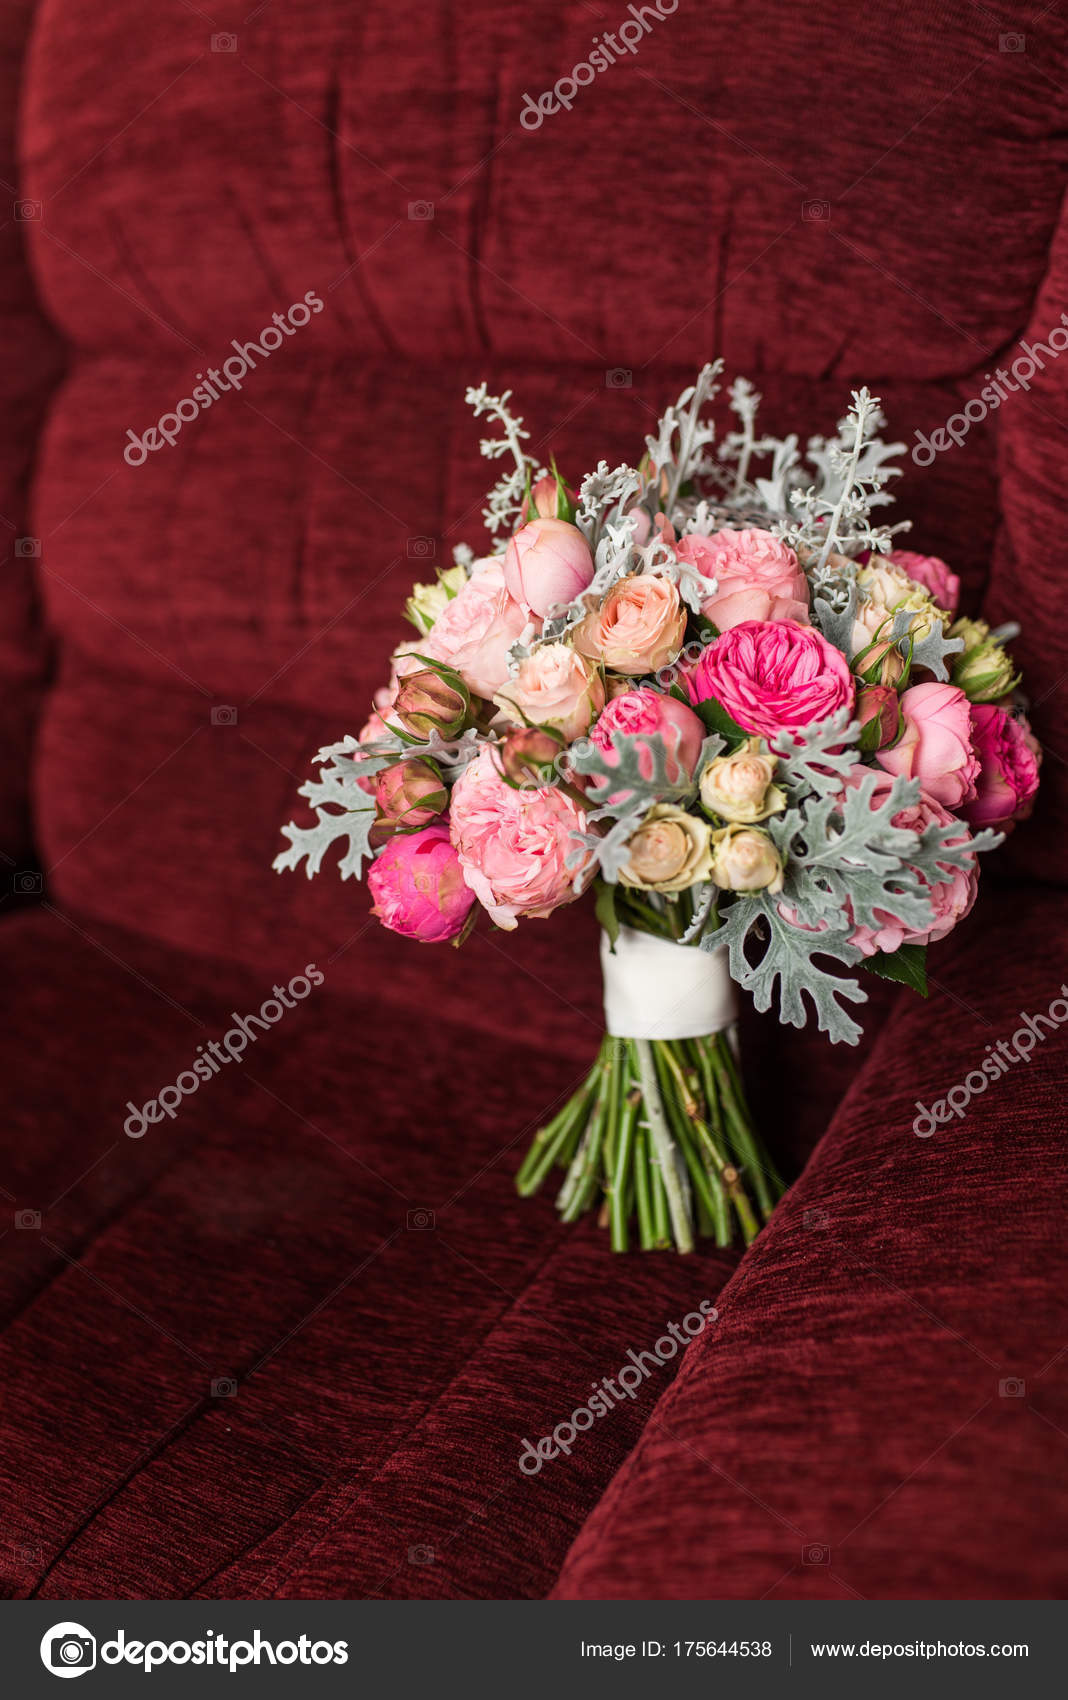 Wedding Bouquet Purple Pink Roses Lying Red Armchair Stock Photo